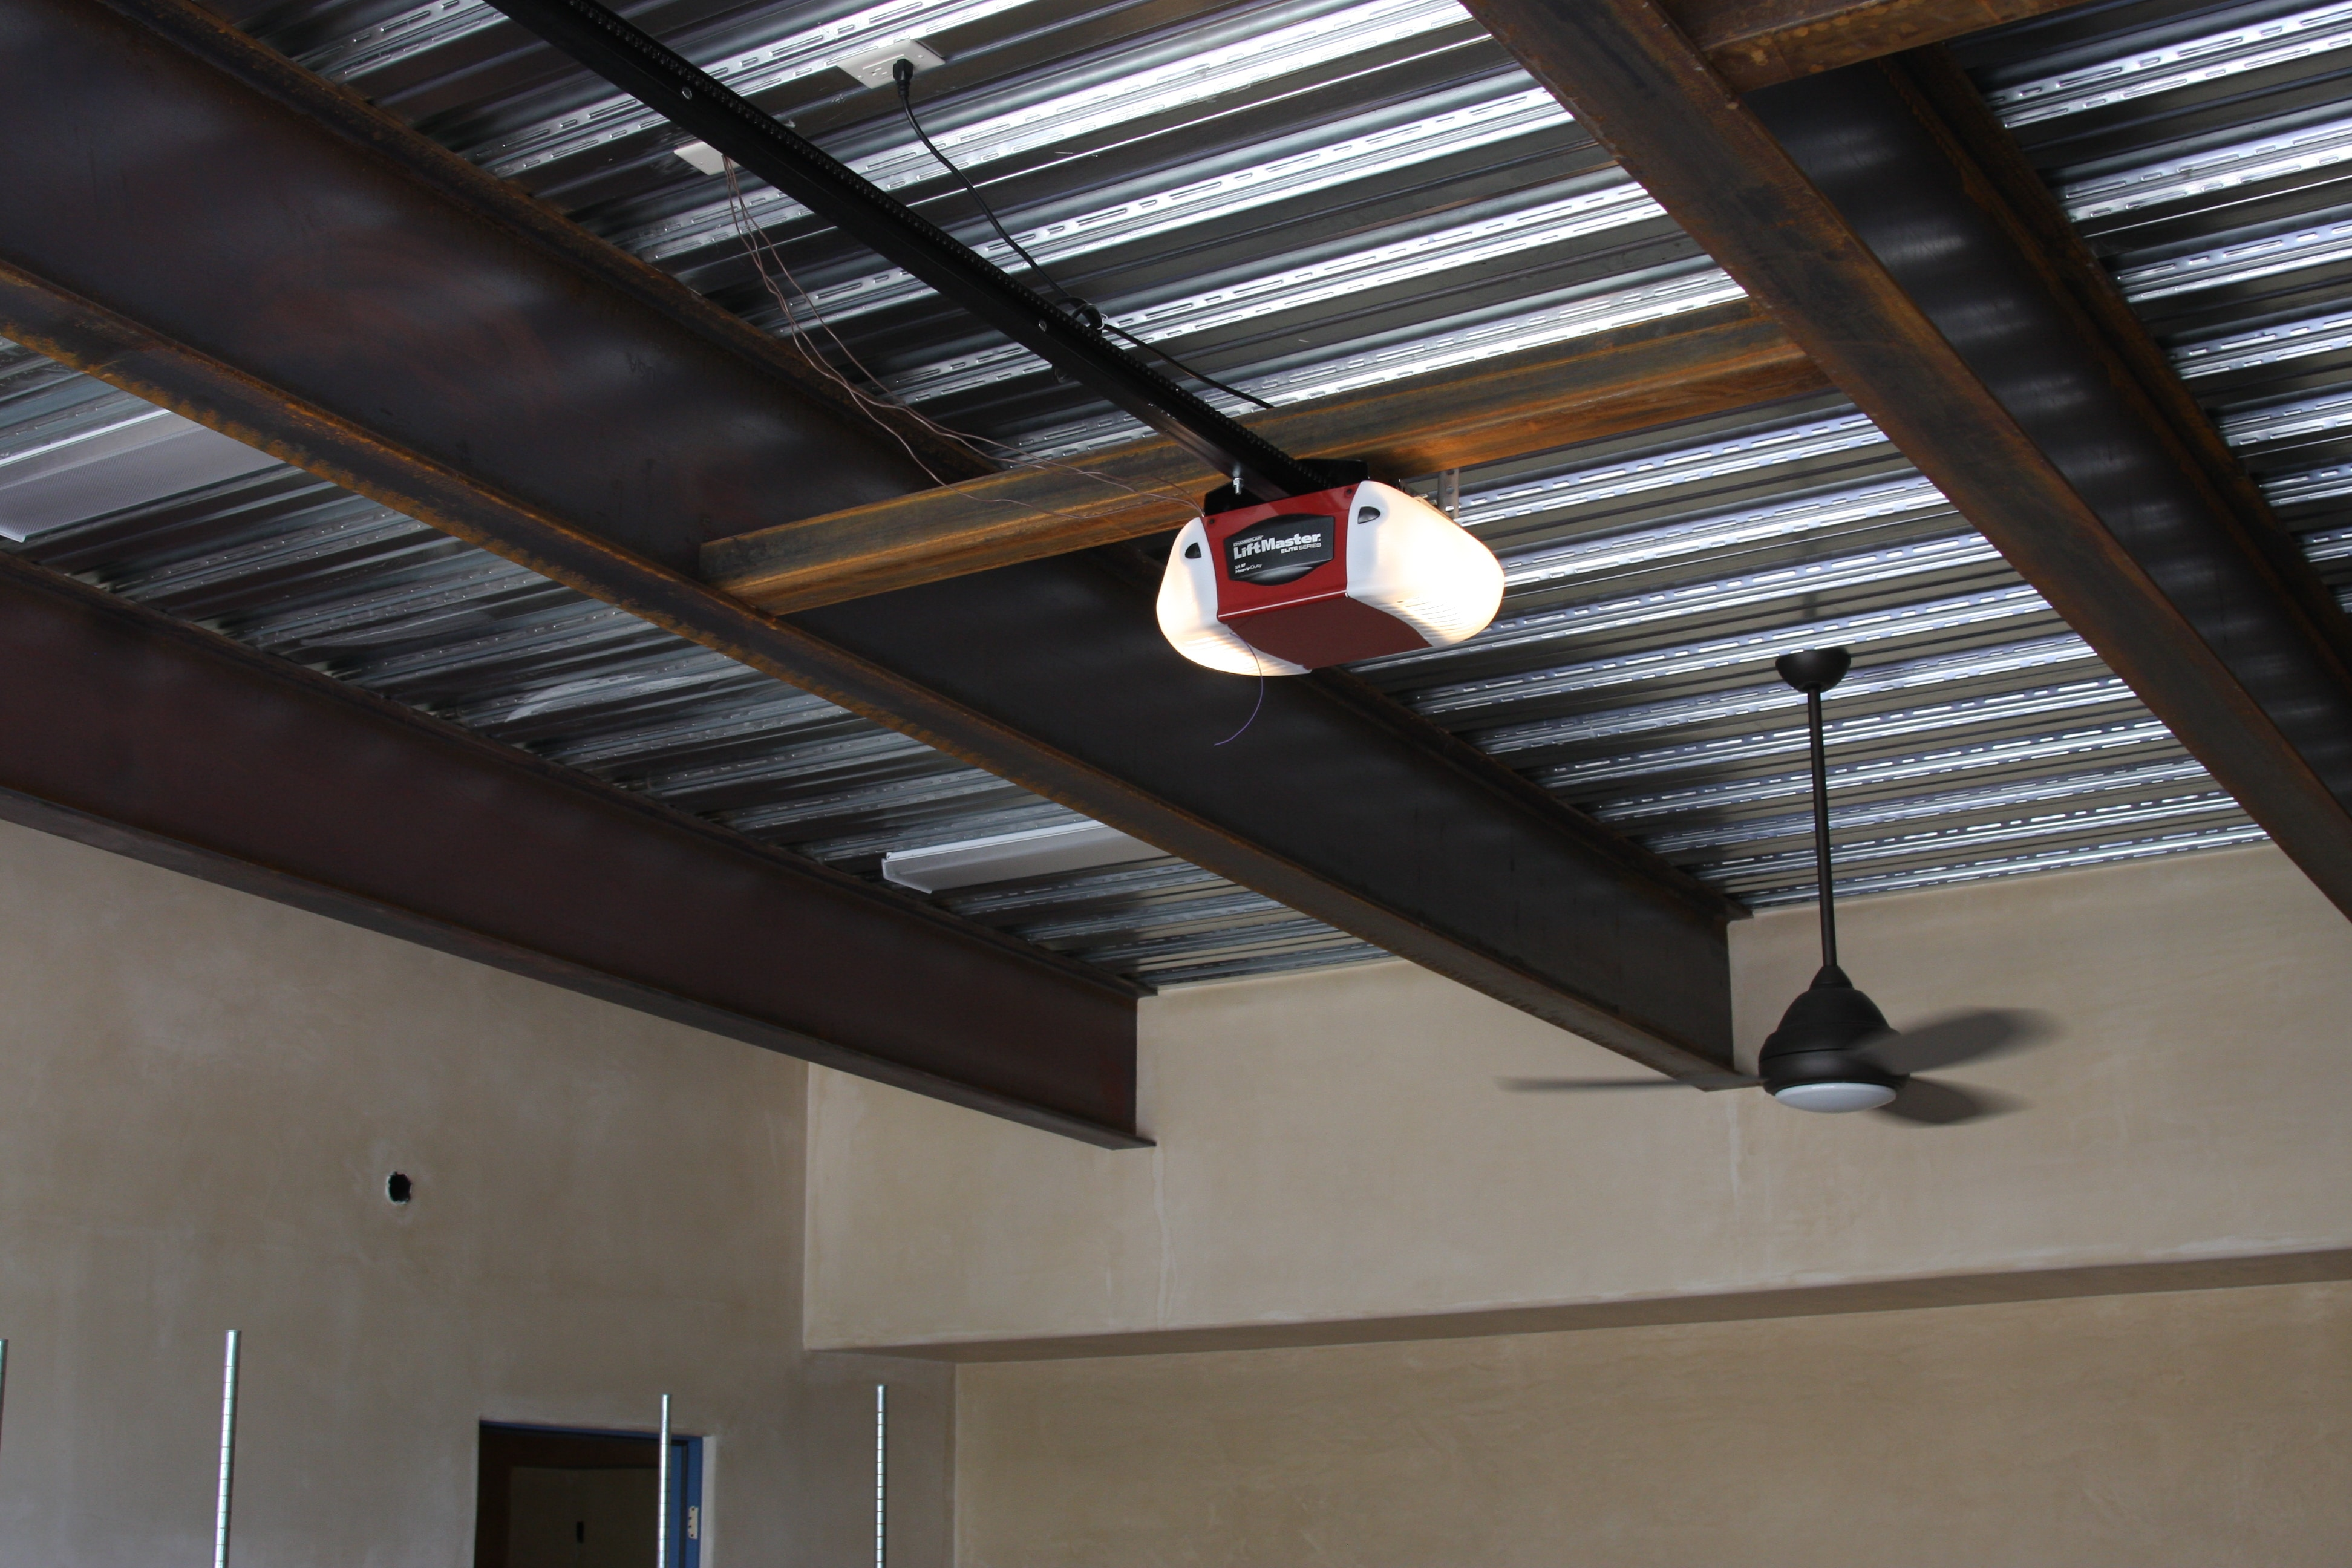 dlrn soundproof concepts apartment soundproofing ceiling design